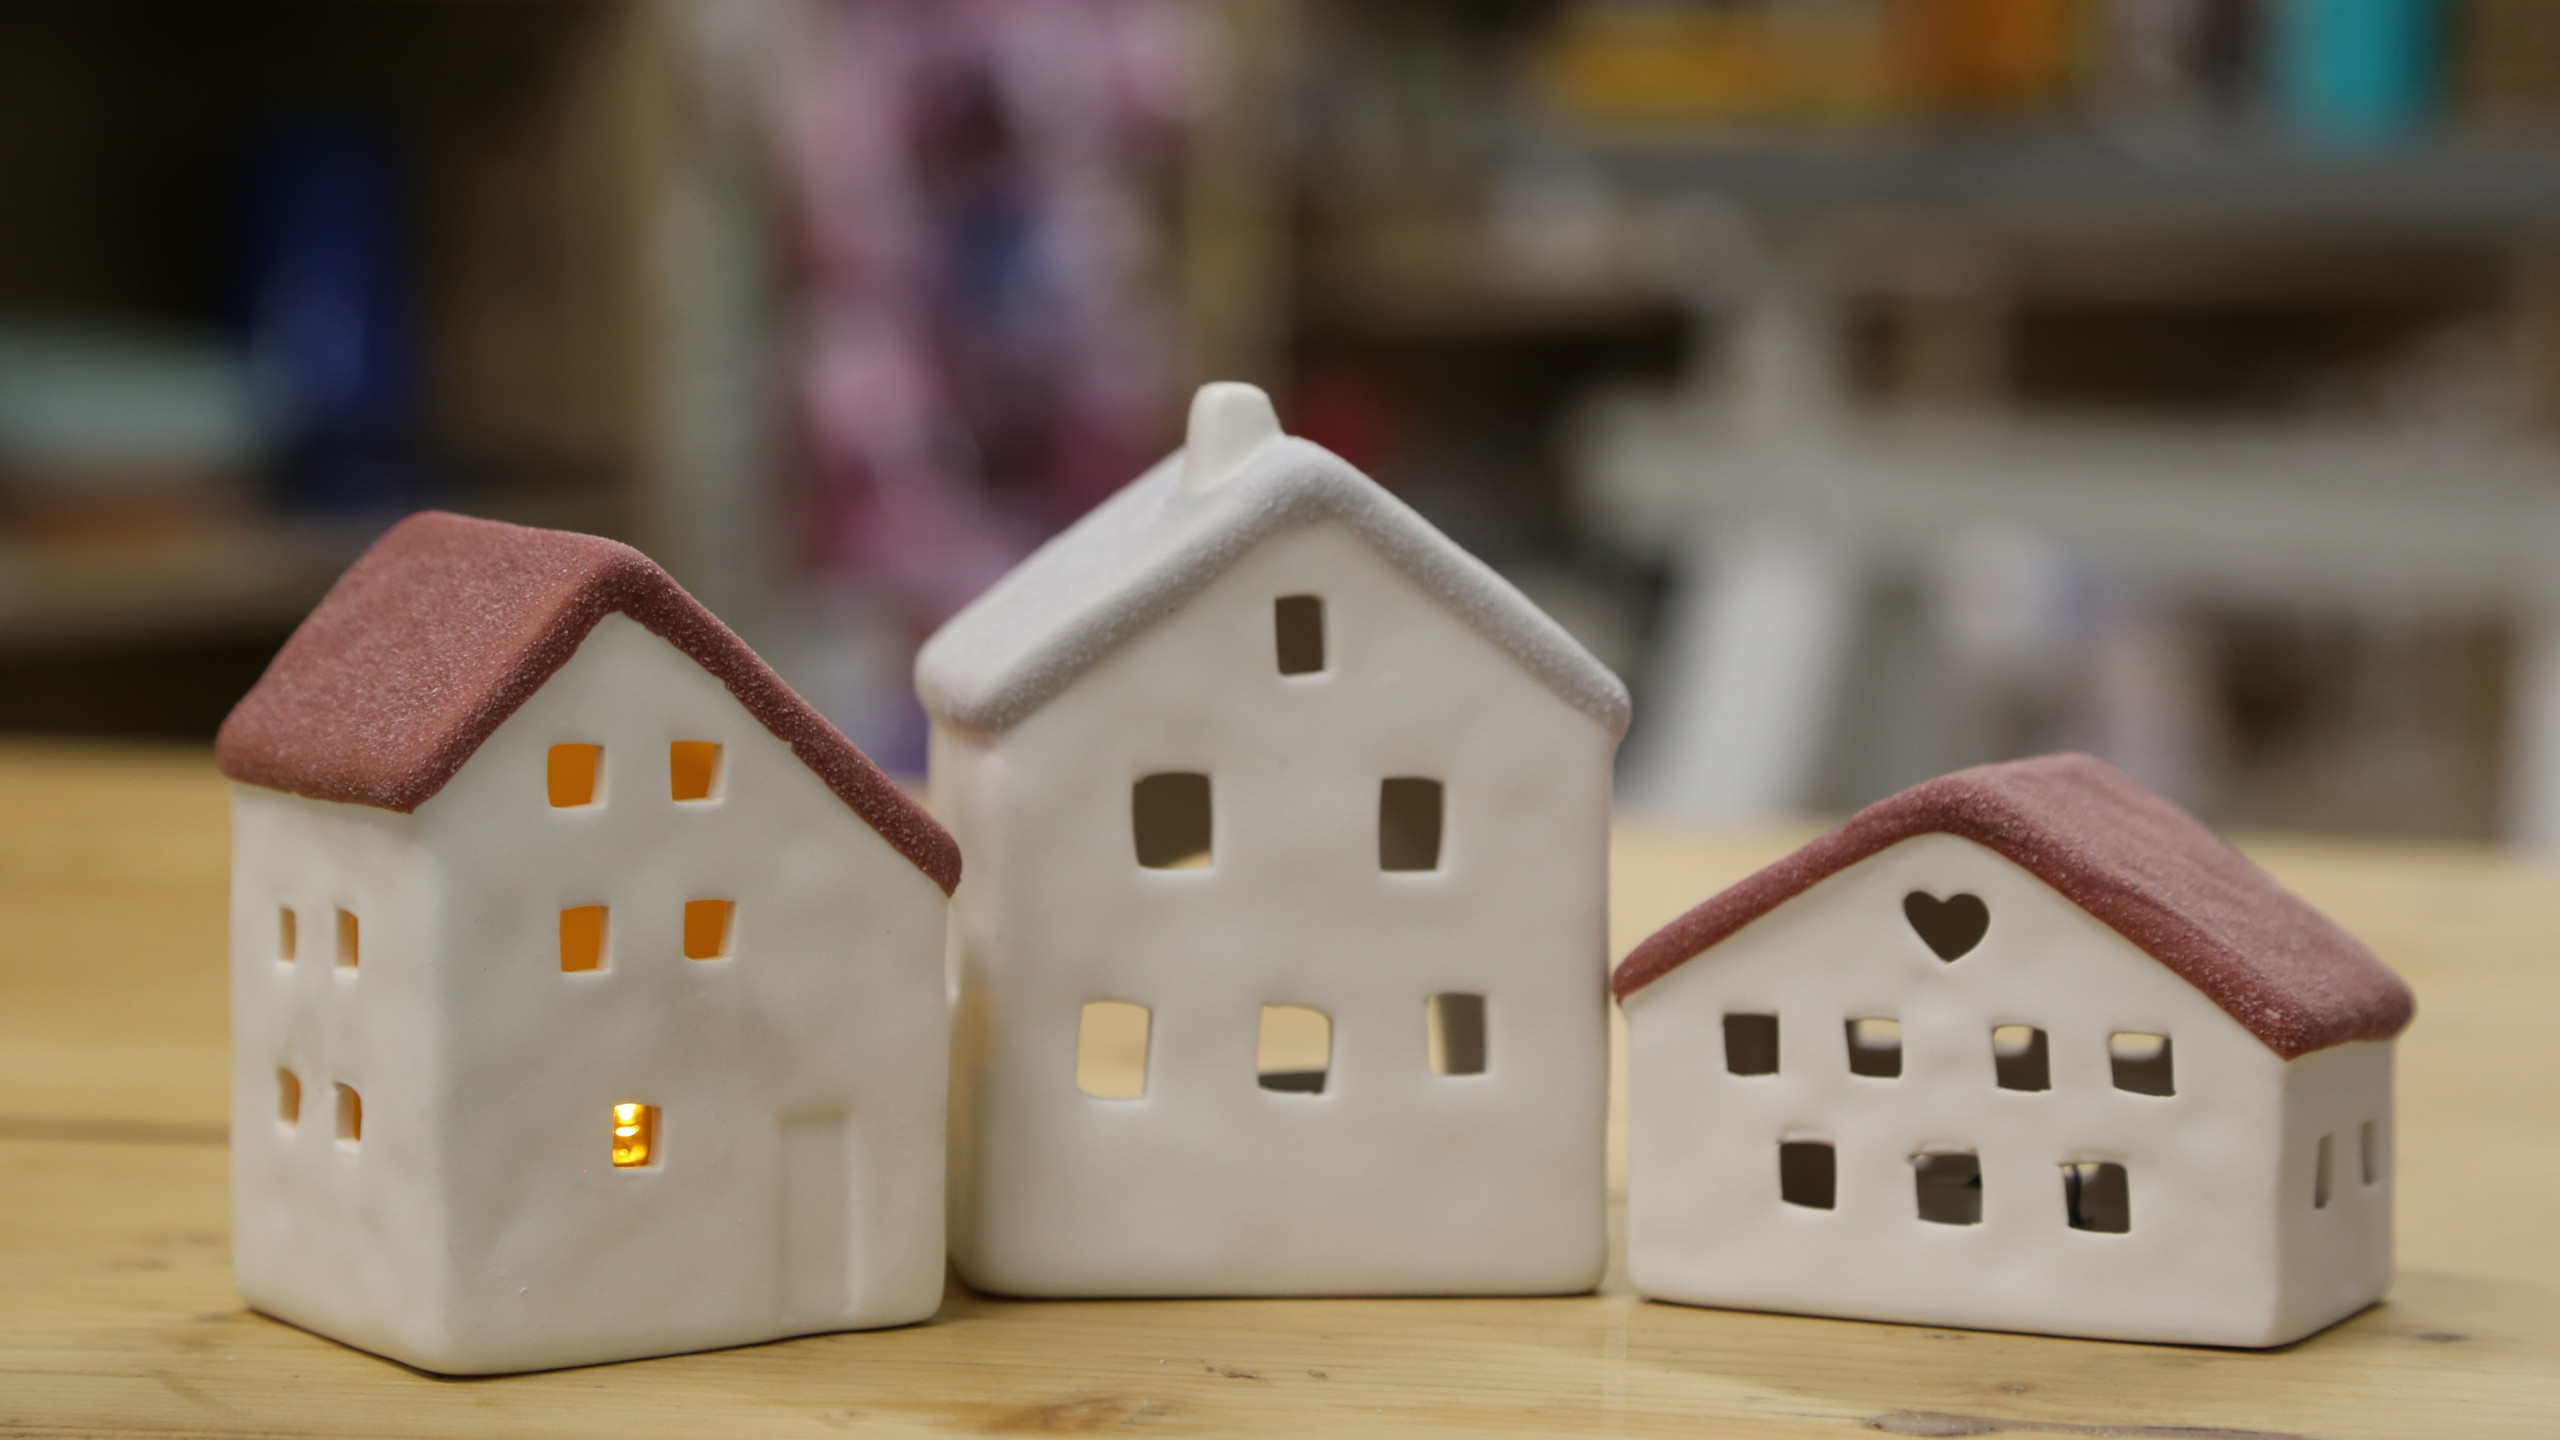 Pottery houses that light up